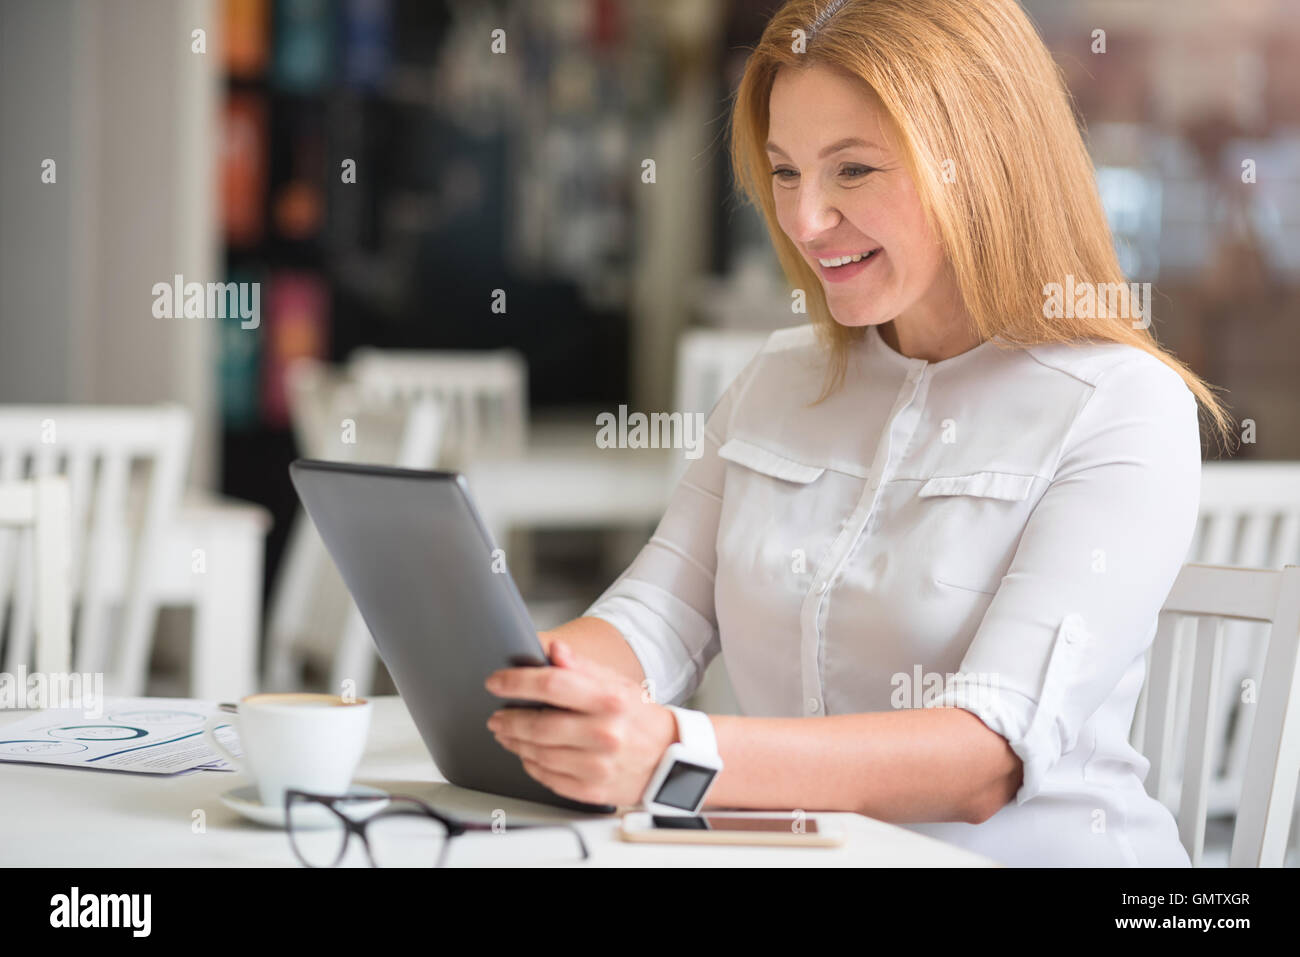 Cheerful woman sitting at the table - Stock Image